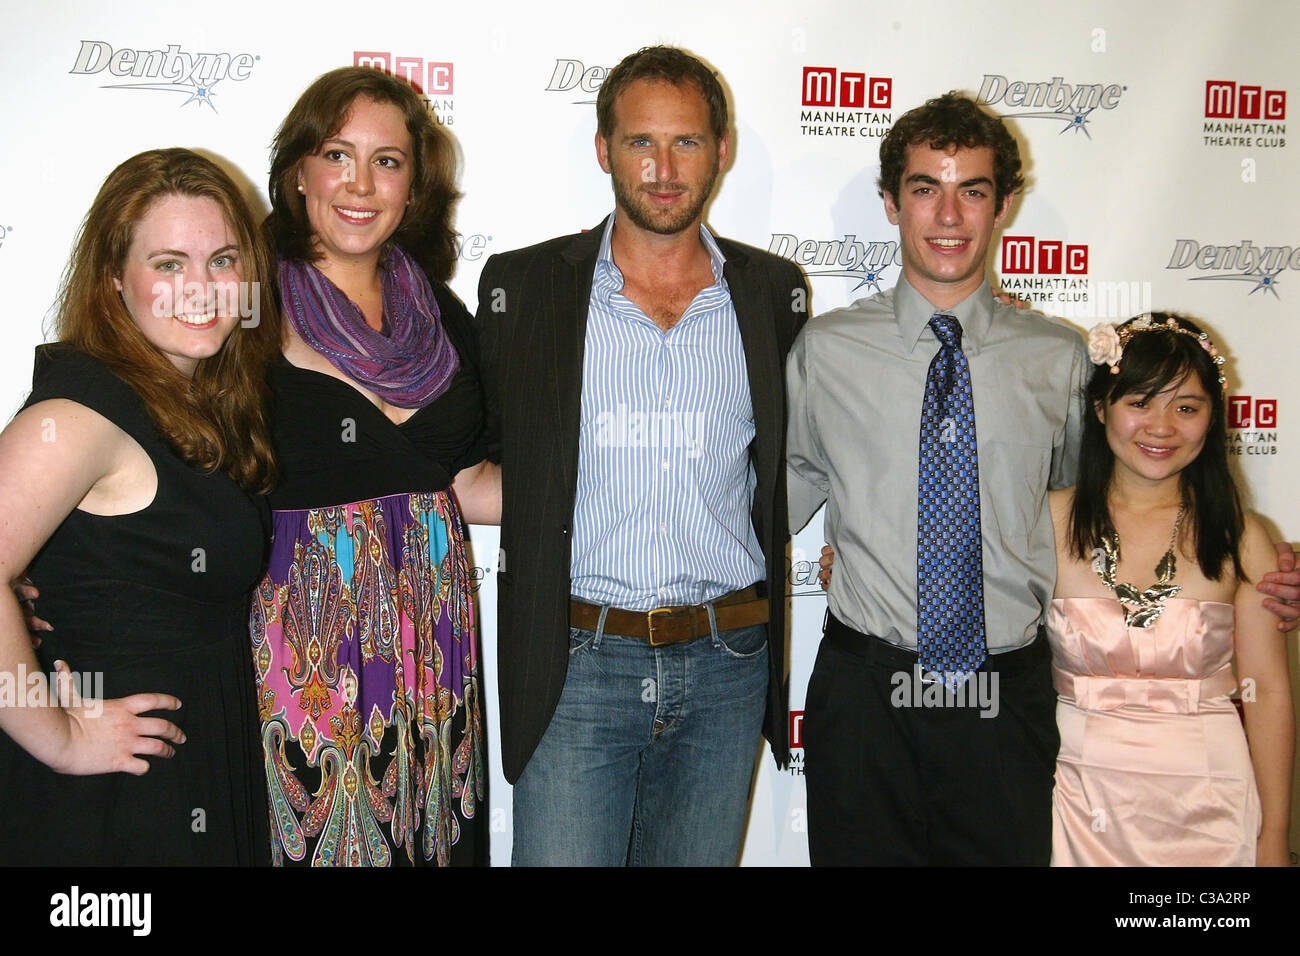 Kelby Siddons, Olivia Swanson,  Josh Lucas, Mike Salomon,  and Nhi Hong Josh Lucas joins Dentyne and Manhattan Theatre - Stock Image